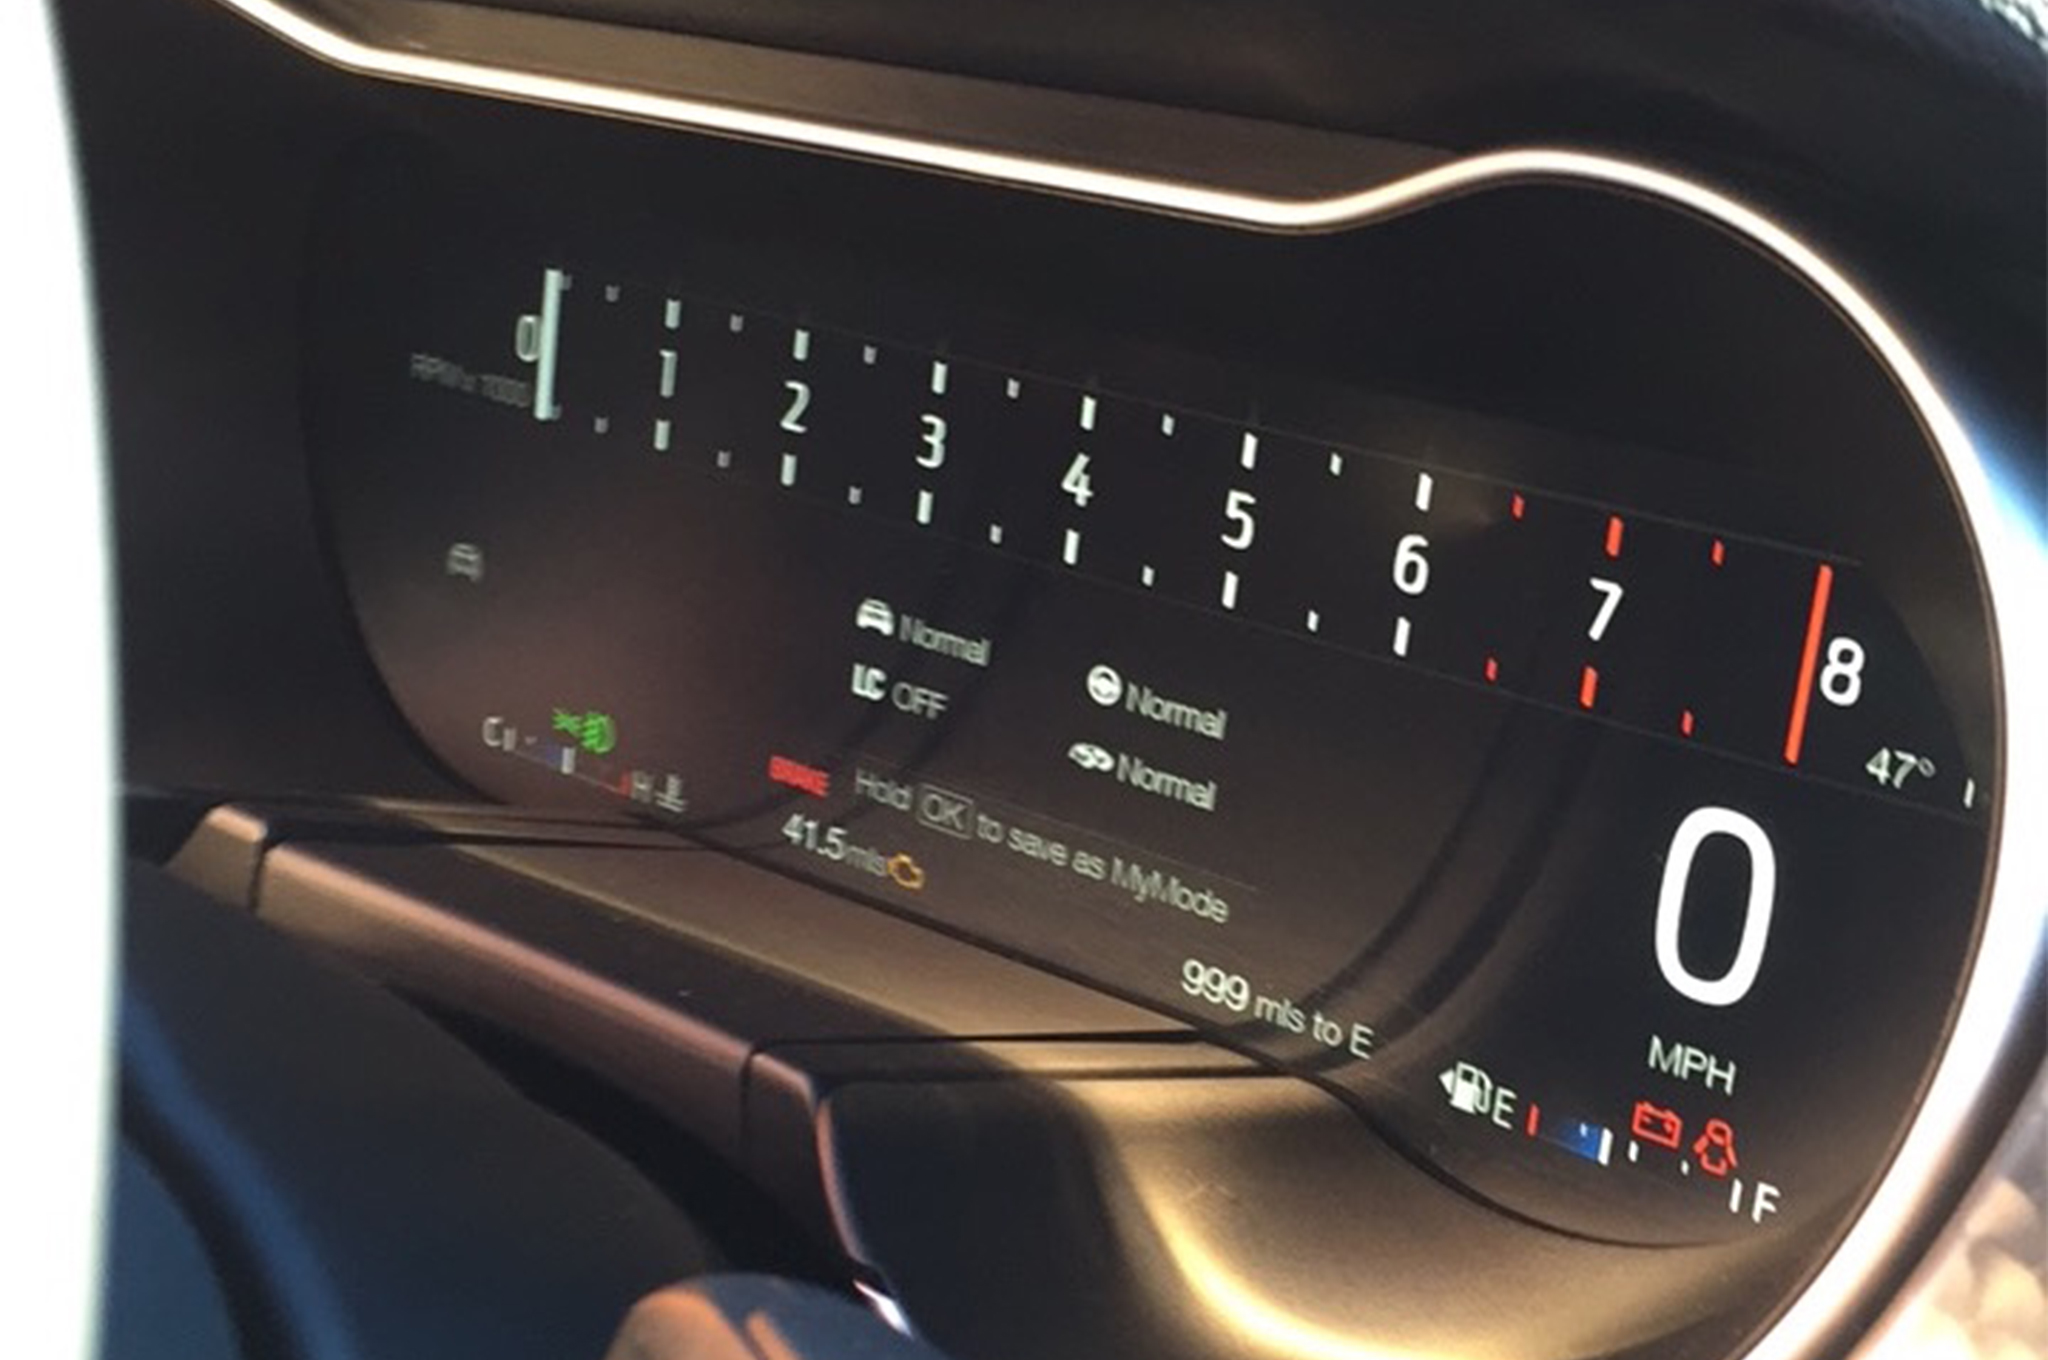 2018-Ford-Mustang-GT-V8-Performance-Pack-digital-instrument-cluster